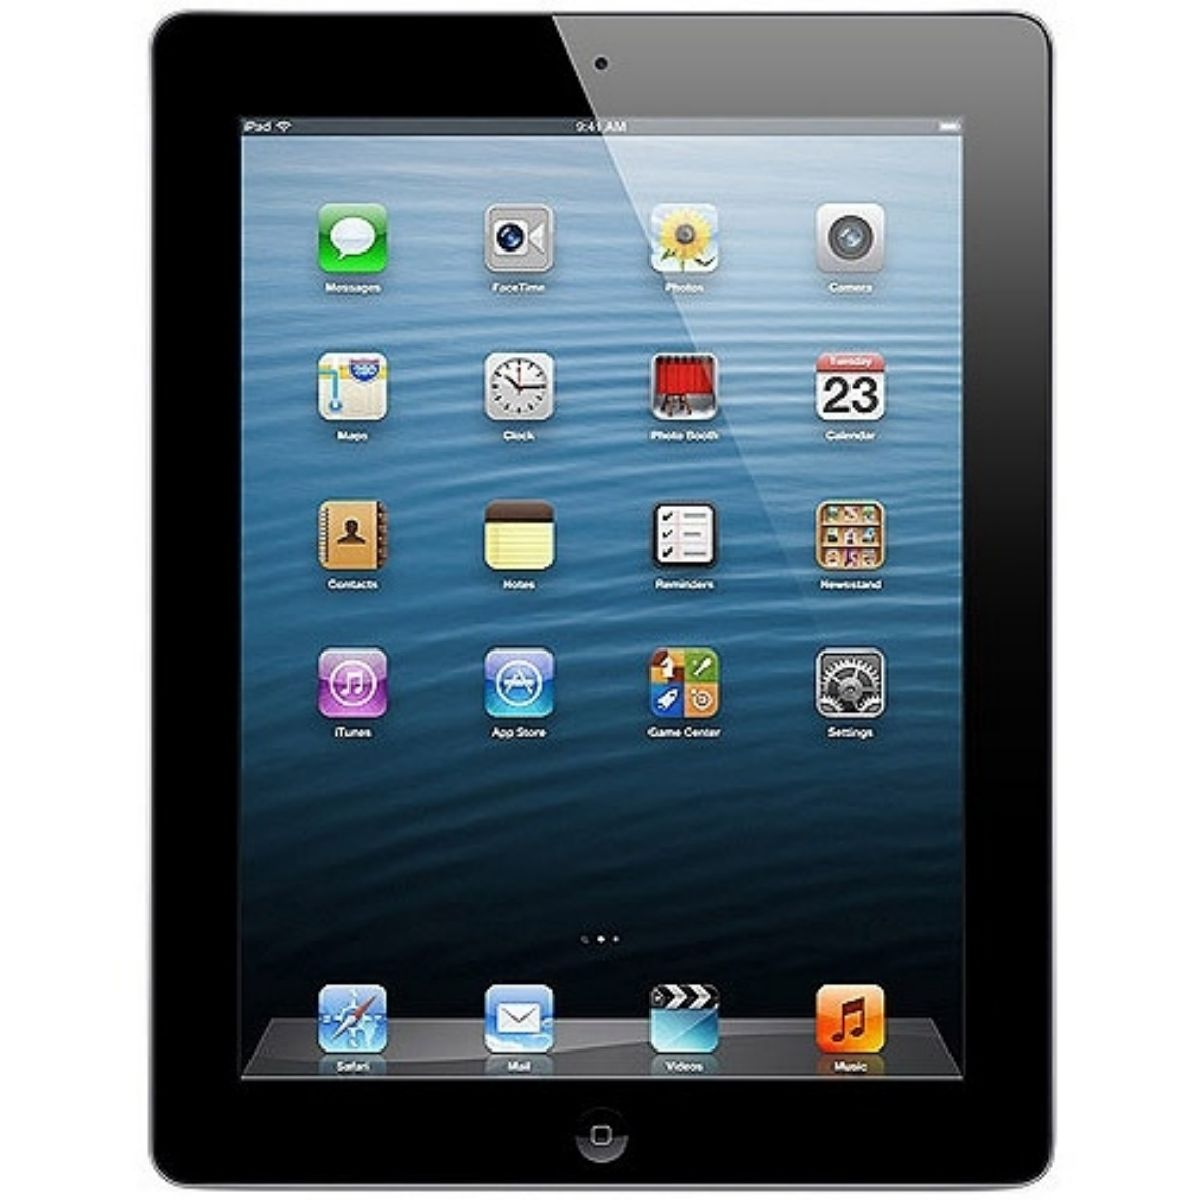 Apple iPad Gen 2 (Verizon), 16GB, Black, A1397